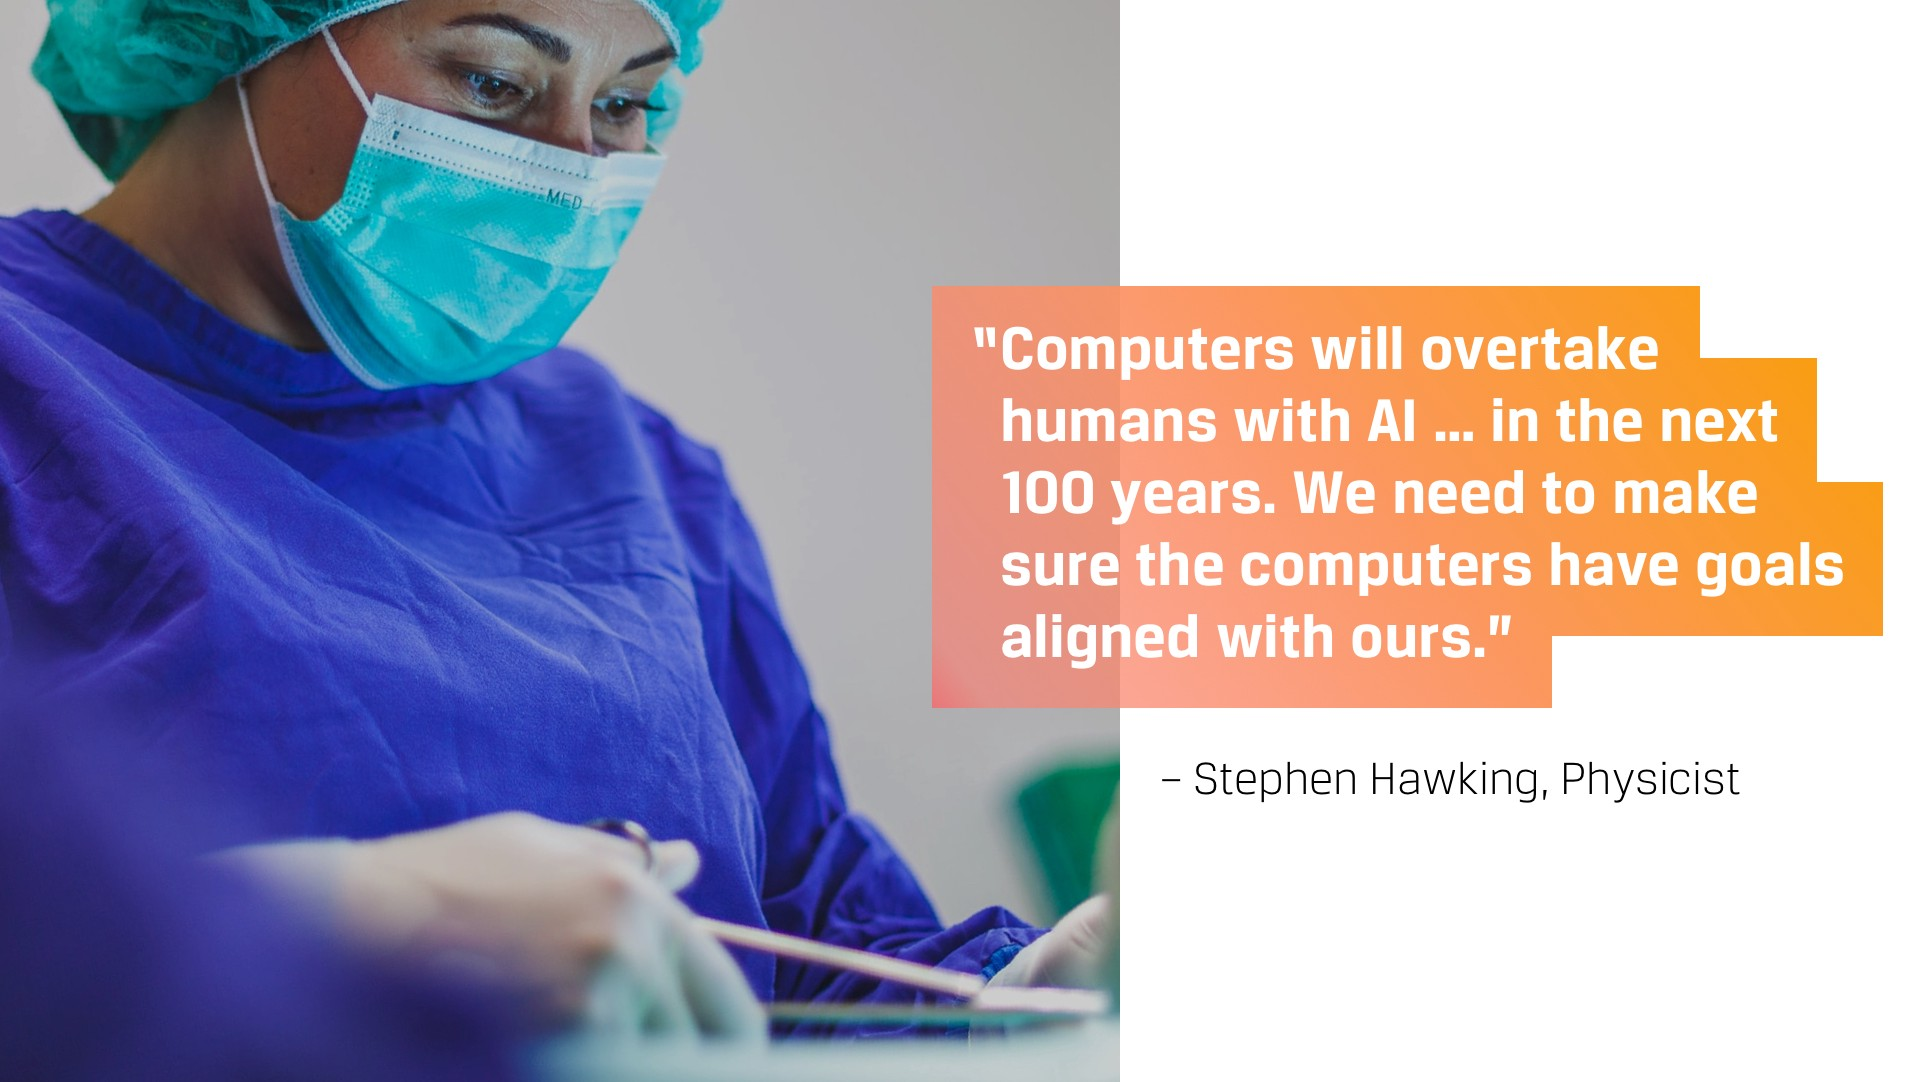 Computers will overtake humans with AI… We need to make sure the computers have goals aligned with ours.—Stephen Hawking